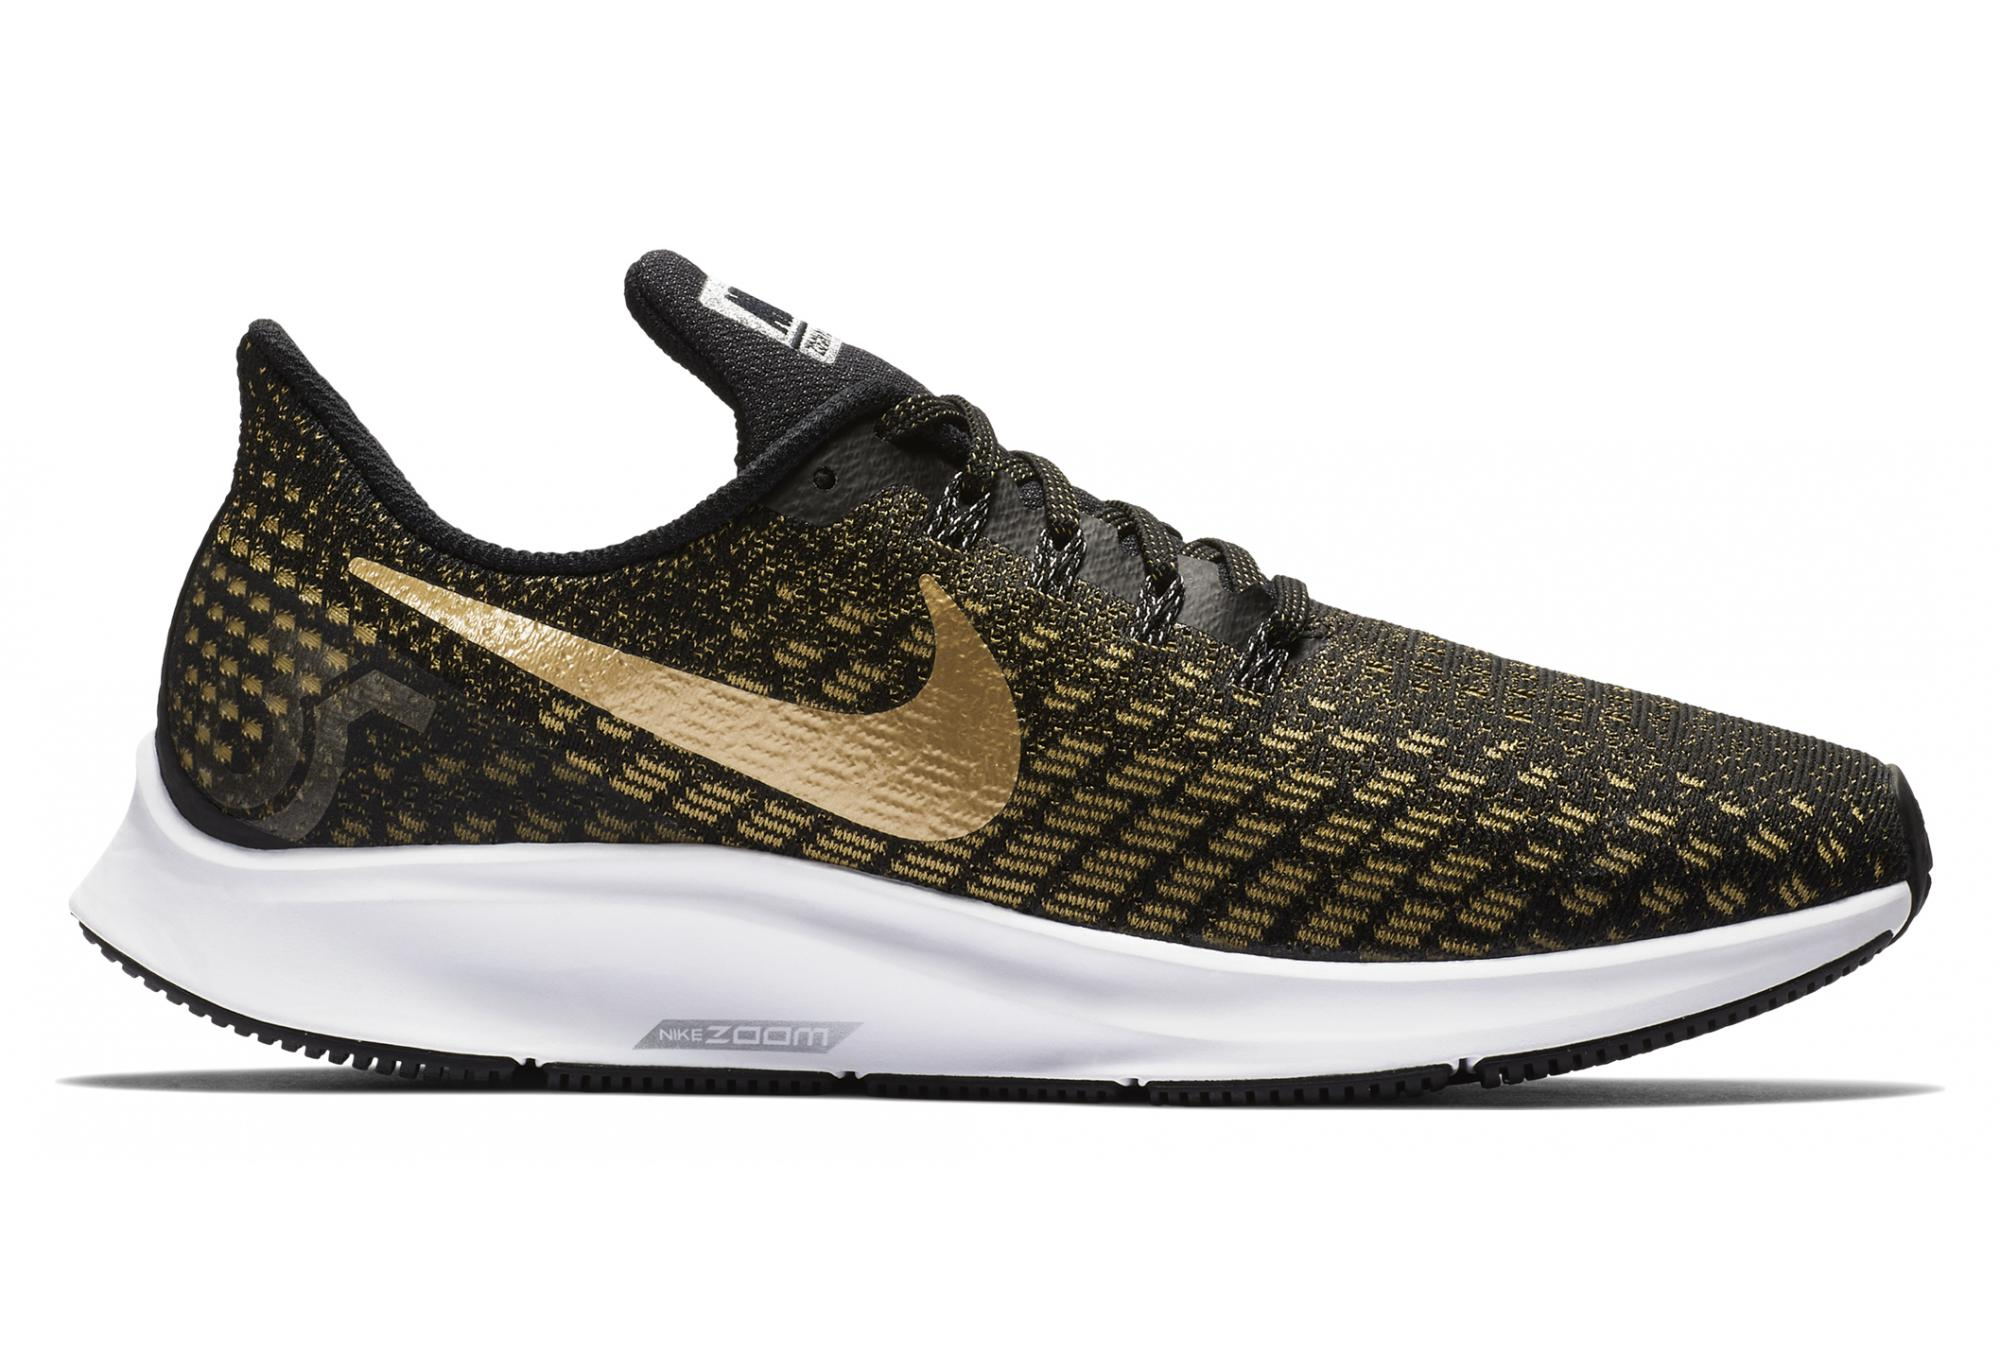 2489059c5213 Nike Air Zoom Pegasus 35 Women's Shoes Black Gold | Alltricks.com